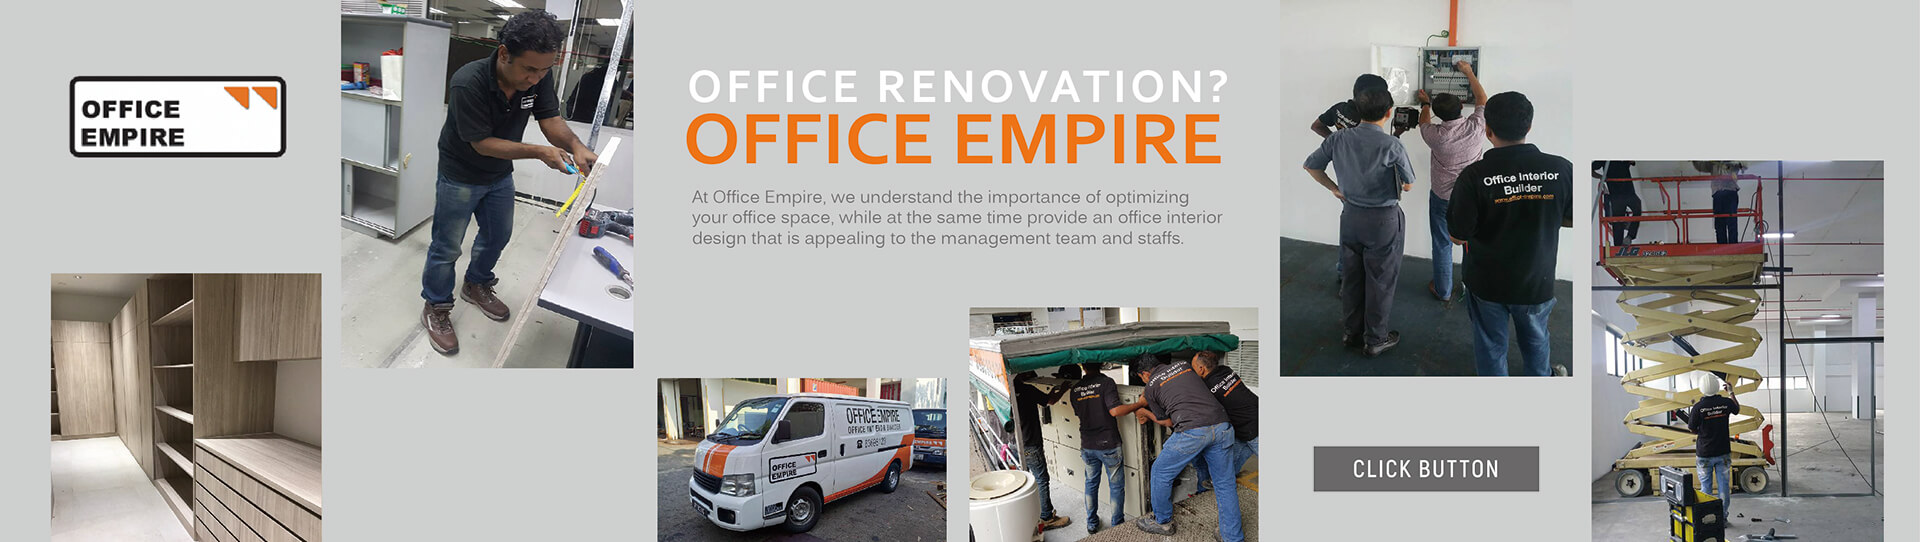 Office Renovation Contractor Singapore Commercial Renovation Singapore